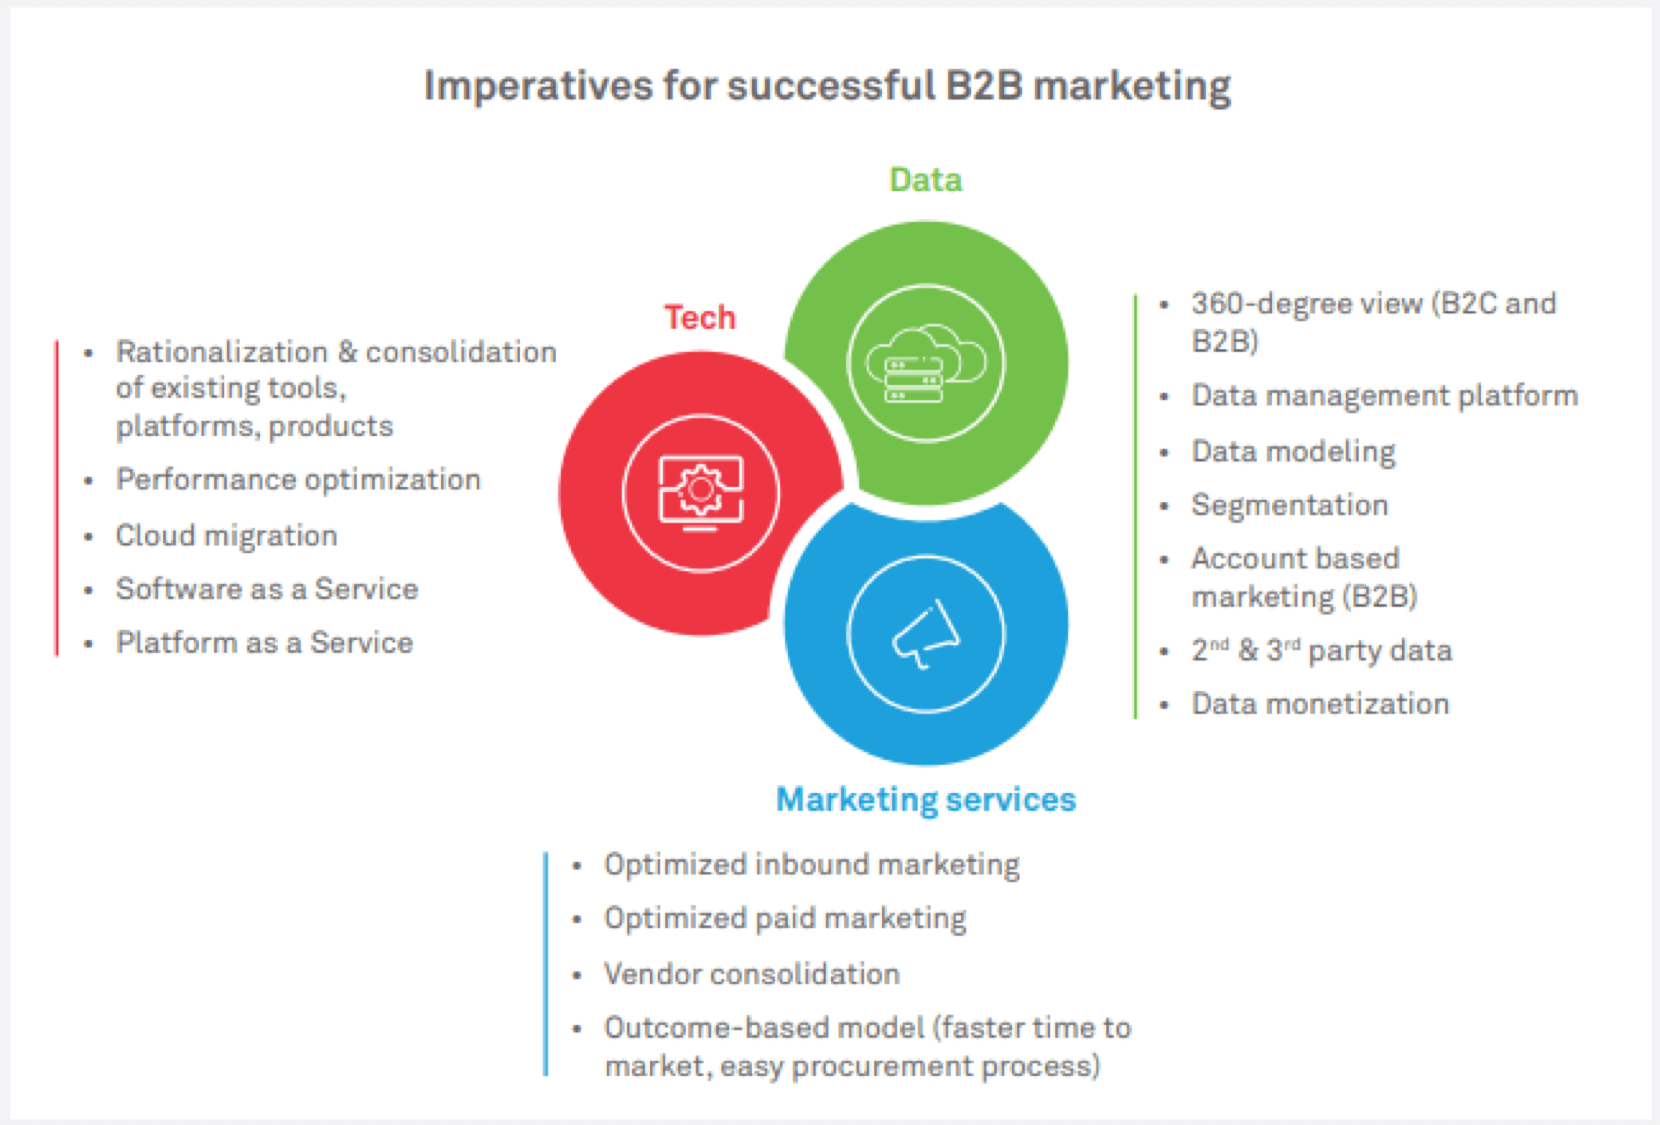 Applying design thinking to build foundations for B2B marketing success